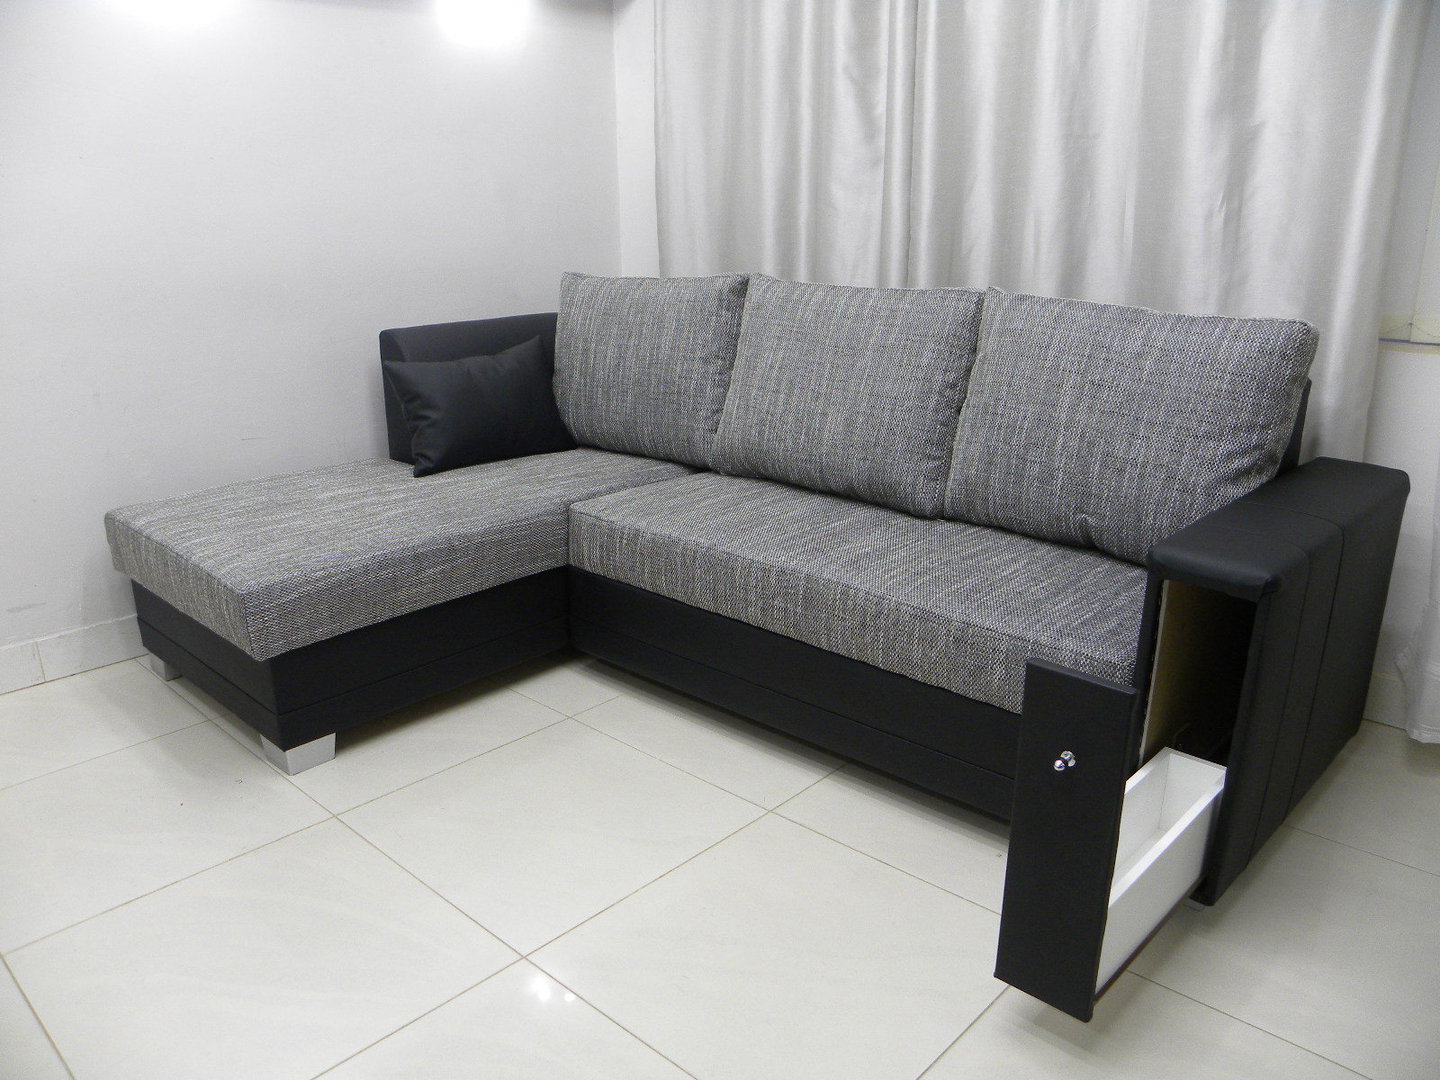 Corner Sofa Bed ''flame'' With A Single Chair Sofa Bed With Regard To Most Current Single Chair Sofa Bed (View 13 of 20)